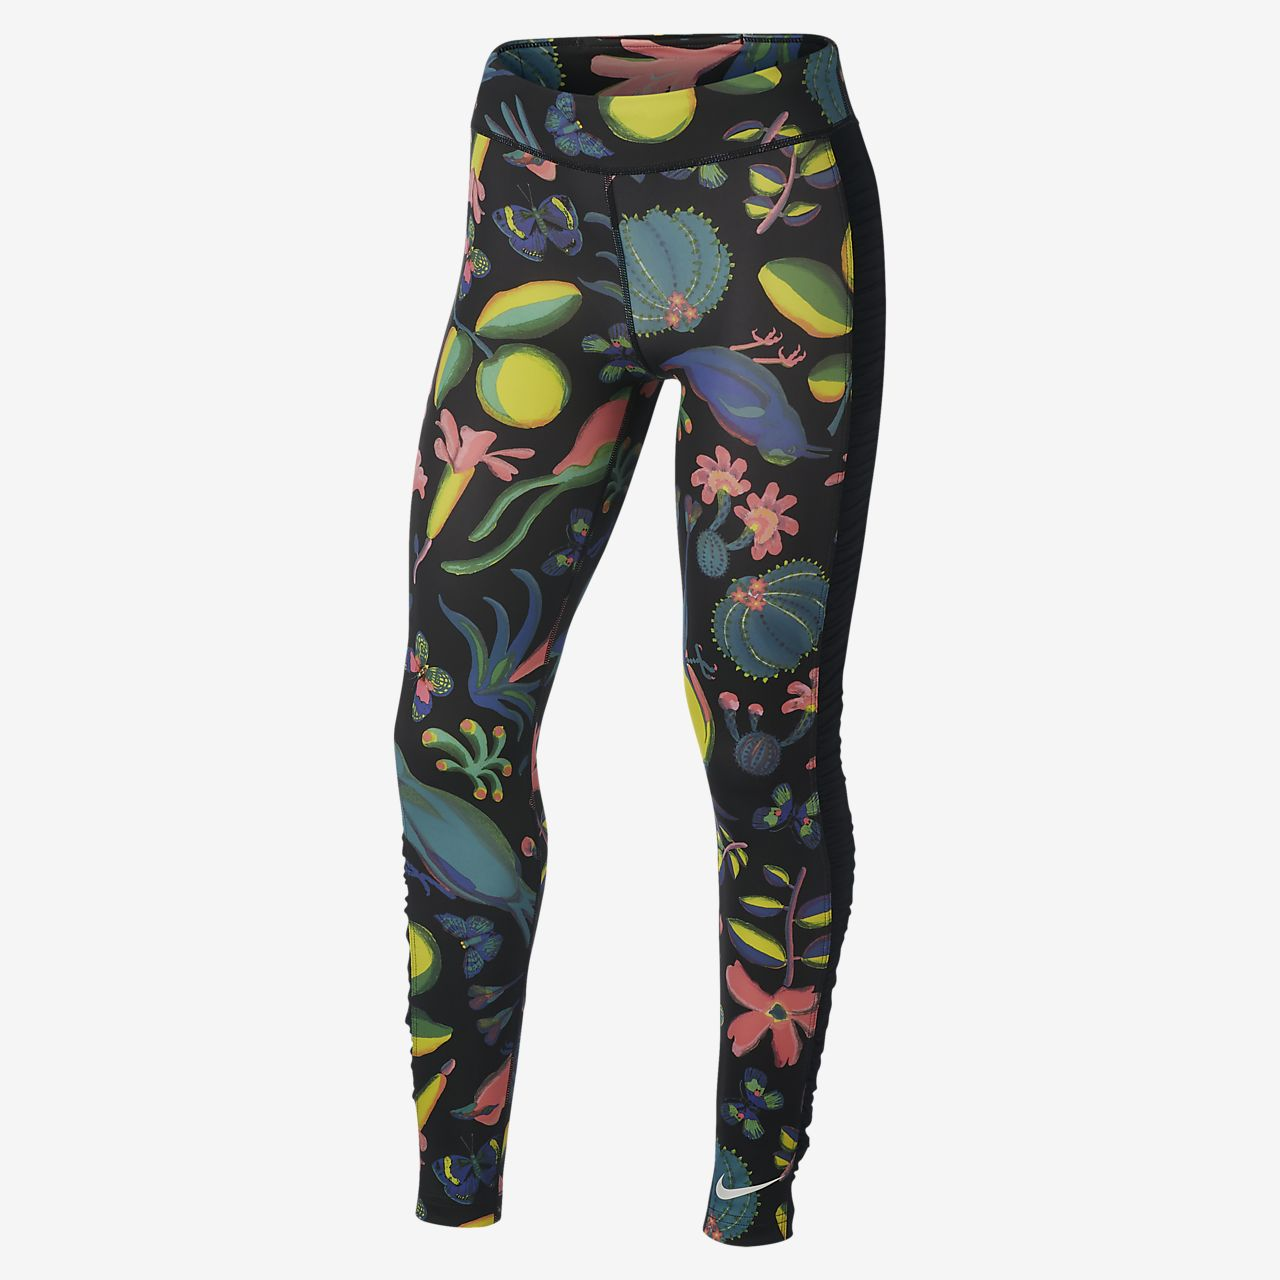 Nike One Older Kids' (Girls') Printed Training Tights